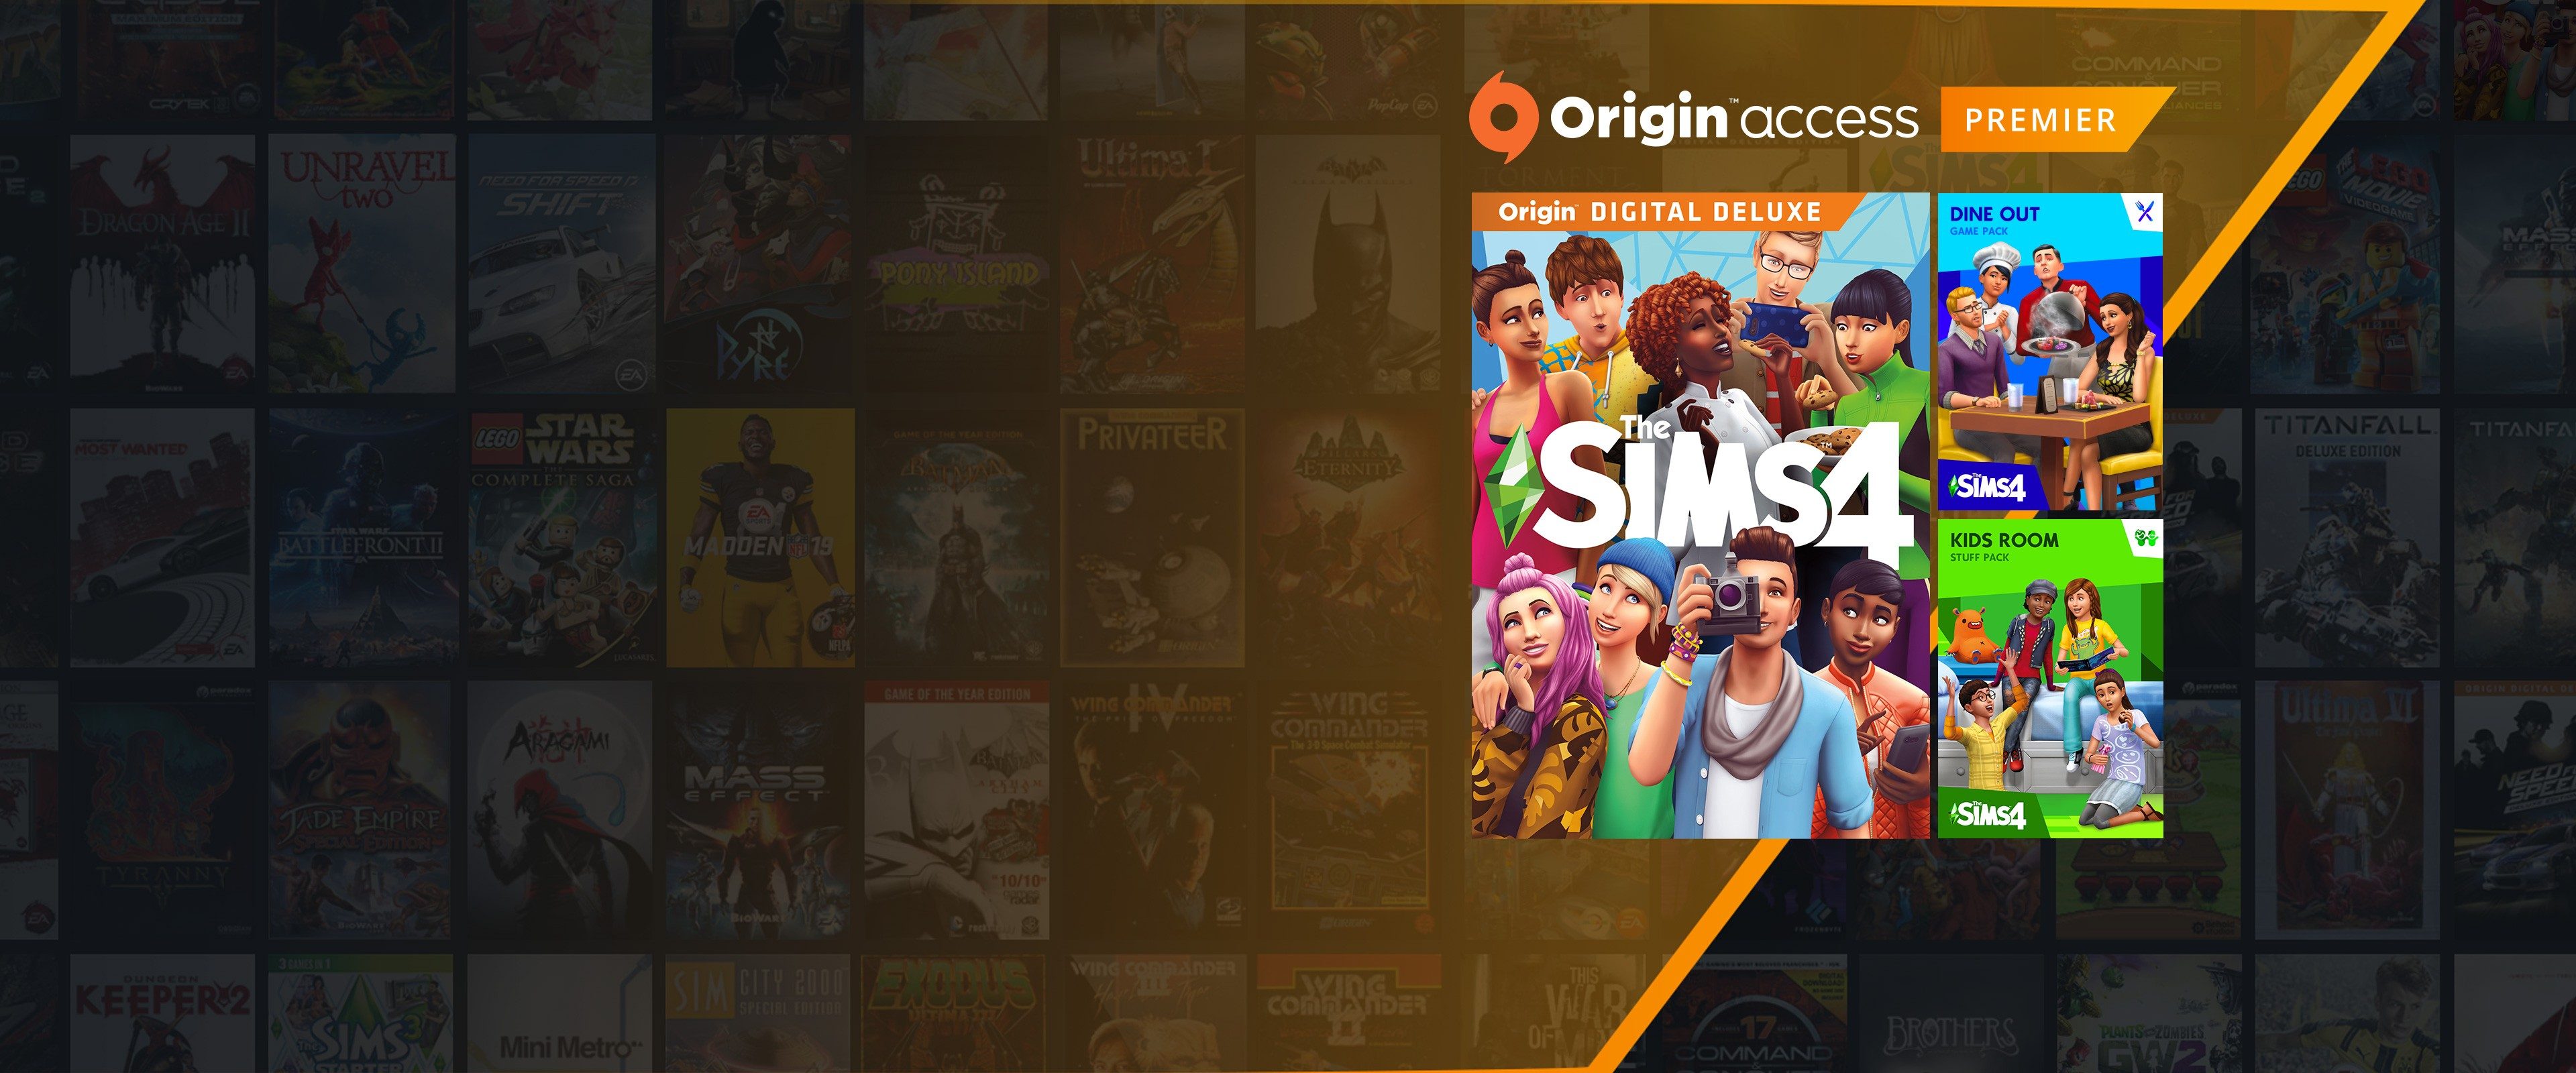 The Sims 4 Pc Mac Origin